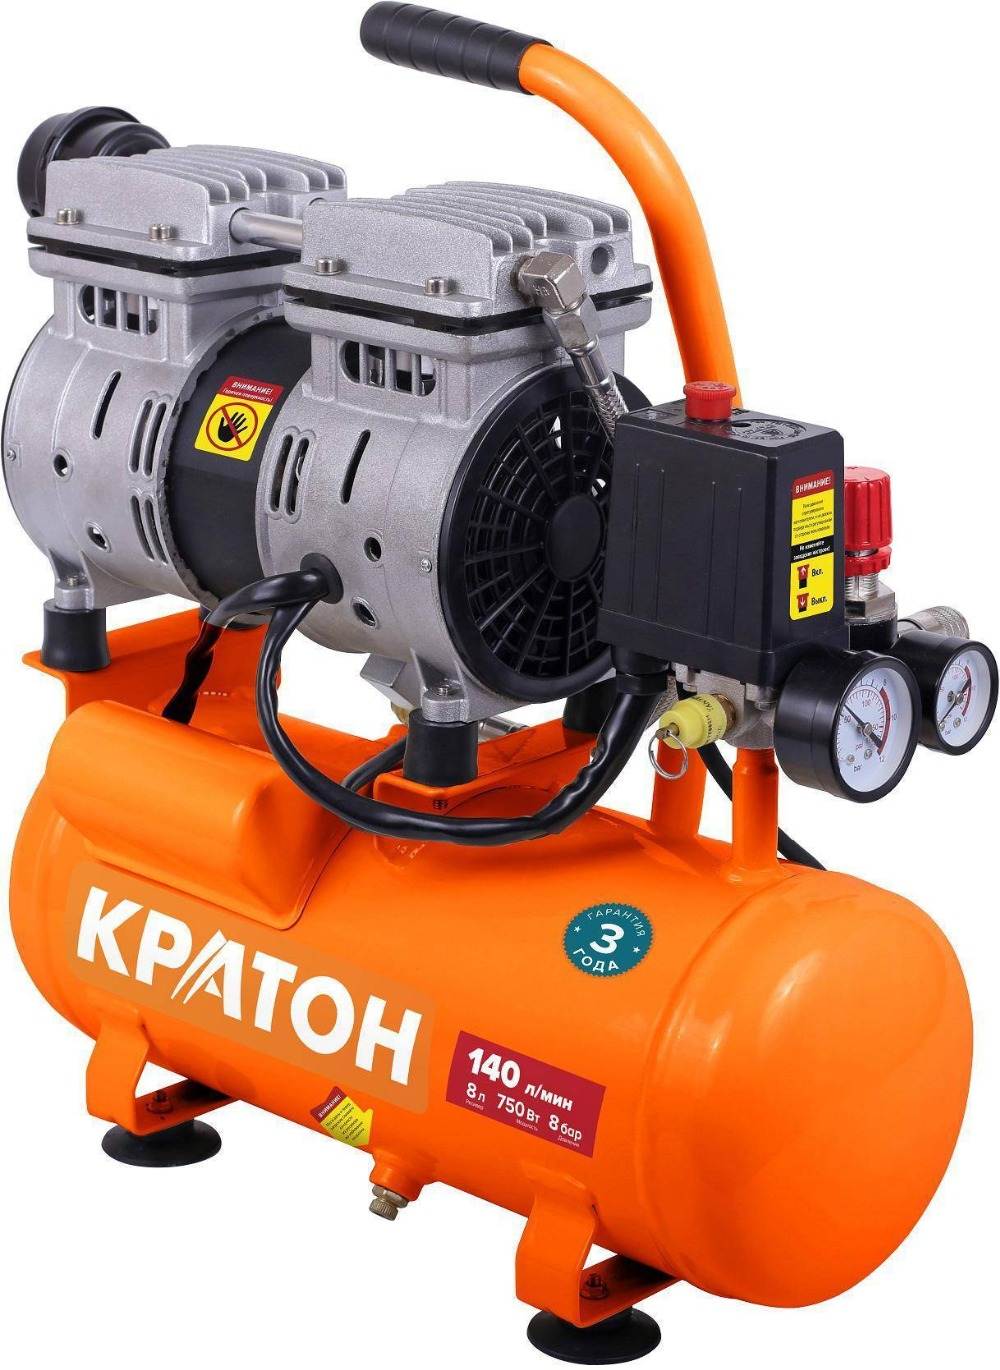 Compressor KRATON with direct transmission oil-free AC-140-8-OFS zndiy bry afr2000 air pressure regulator oil water separator trap filter airbrush compressor